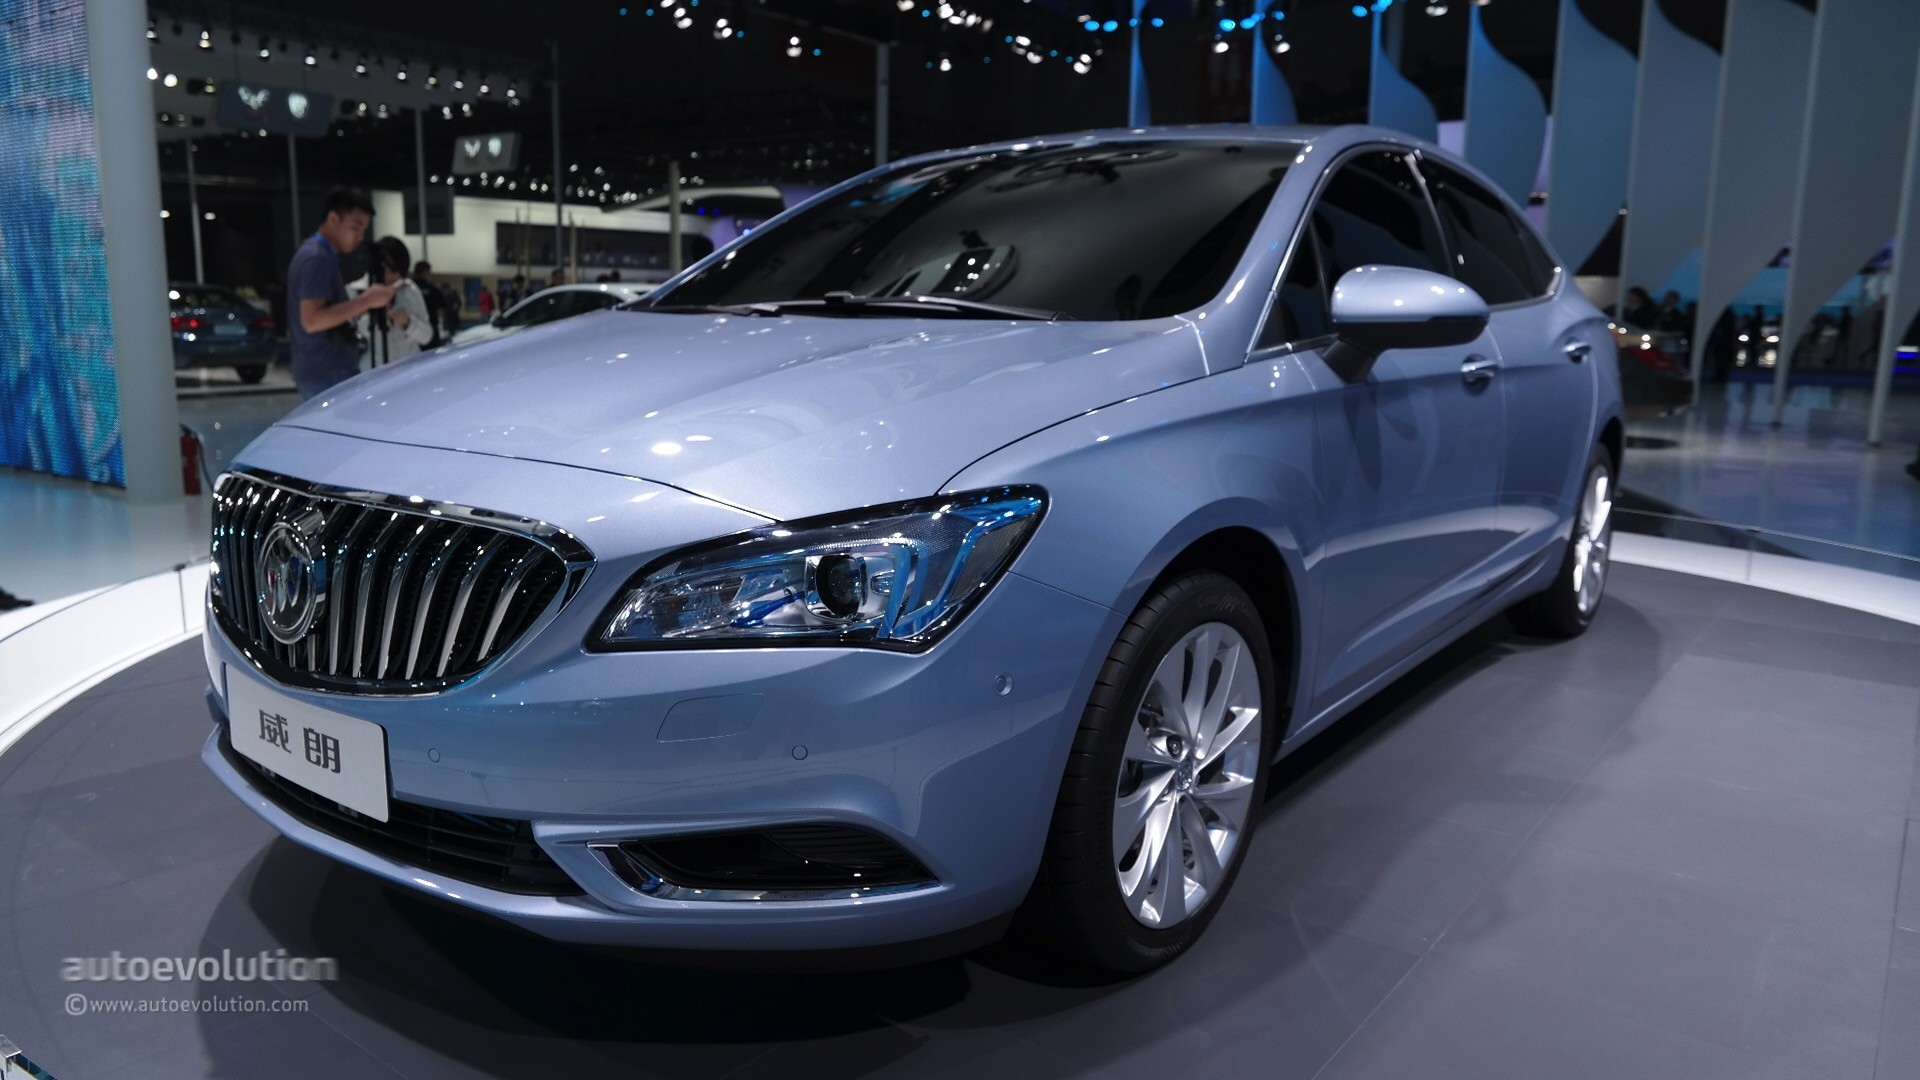 2016 Buick Verano At The Shanghai Auto Show 2017